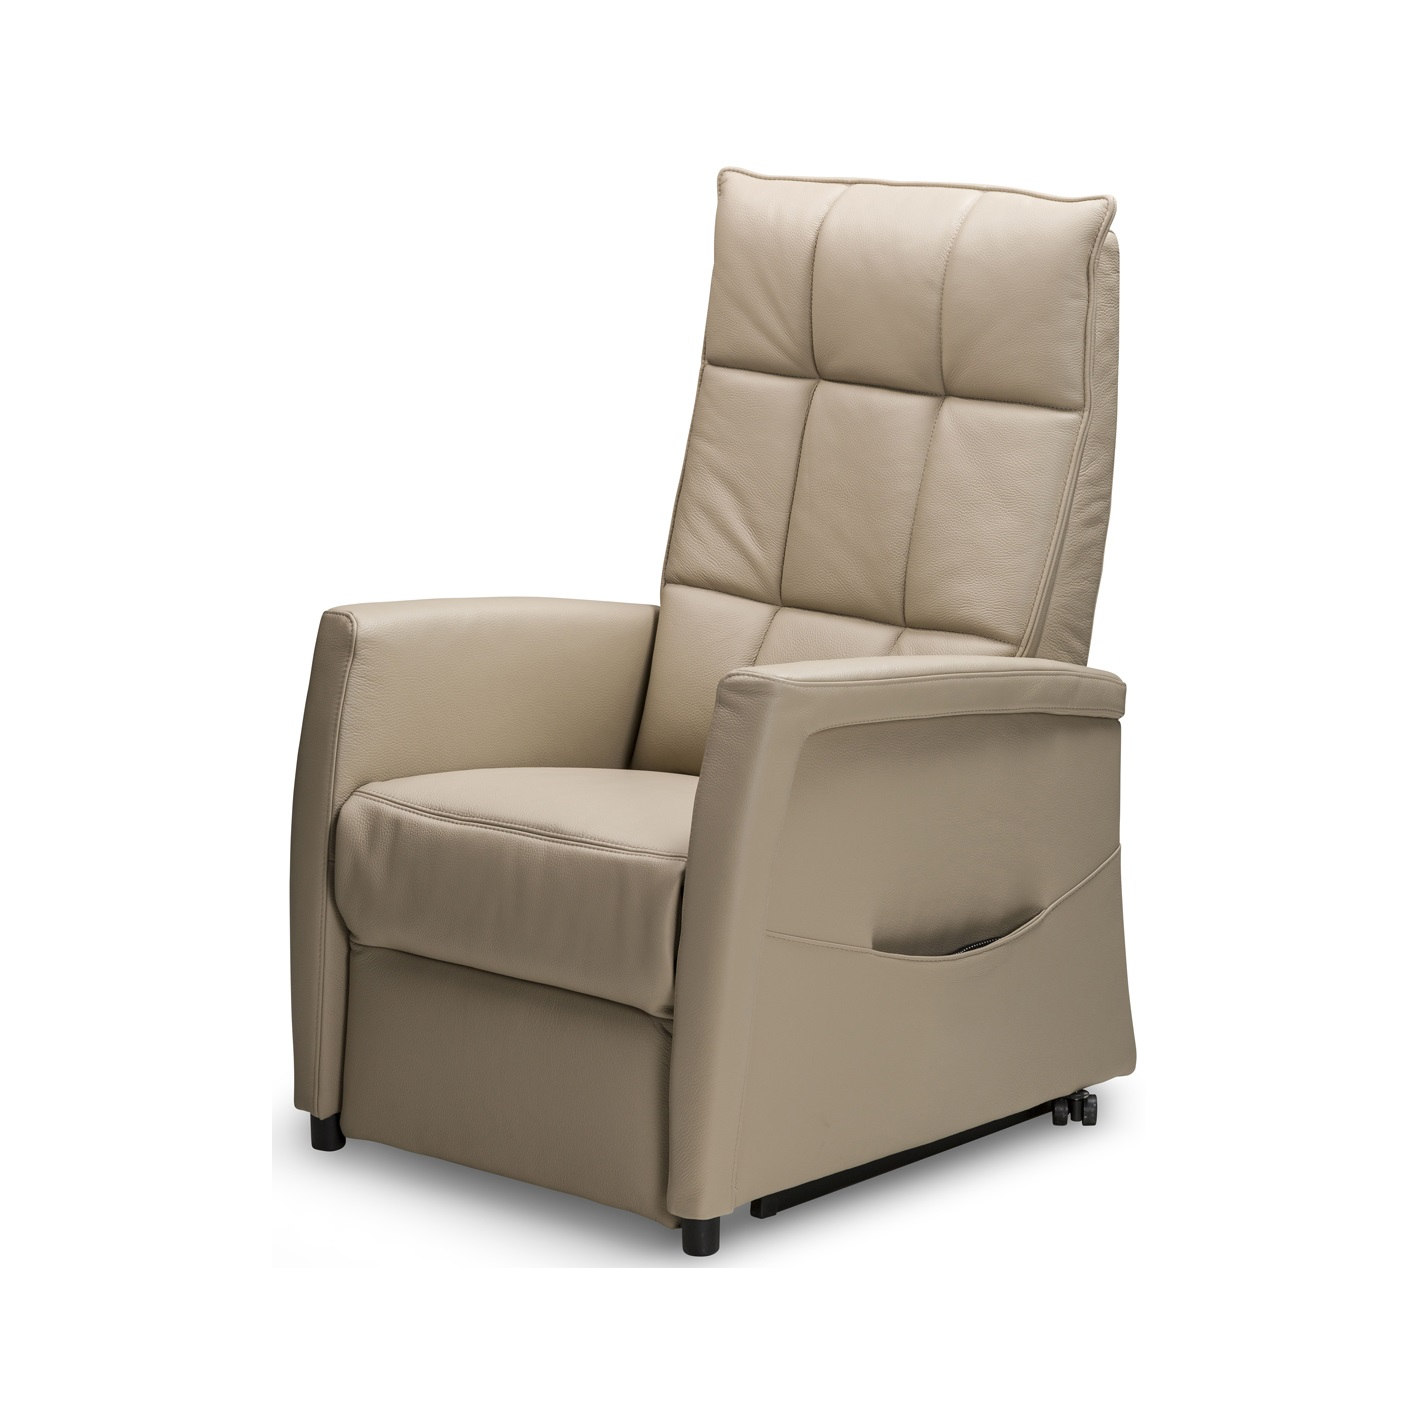 ancona-relax-fauteuil